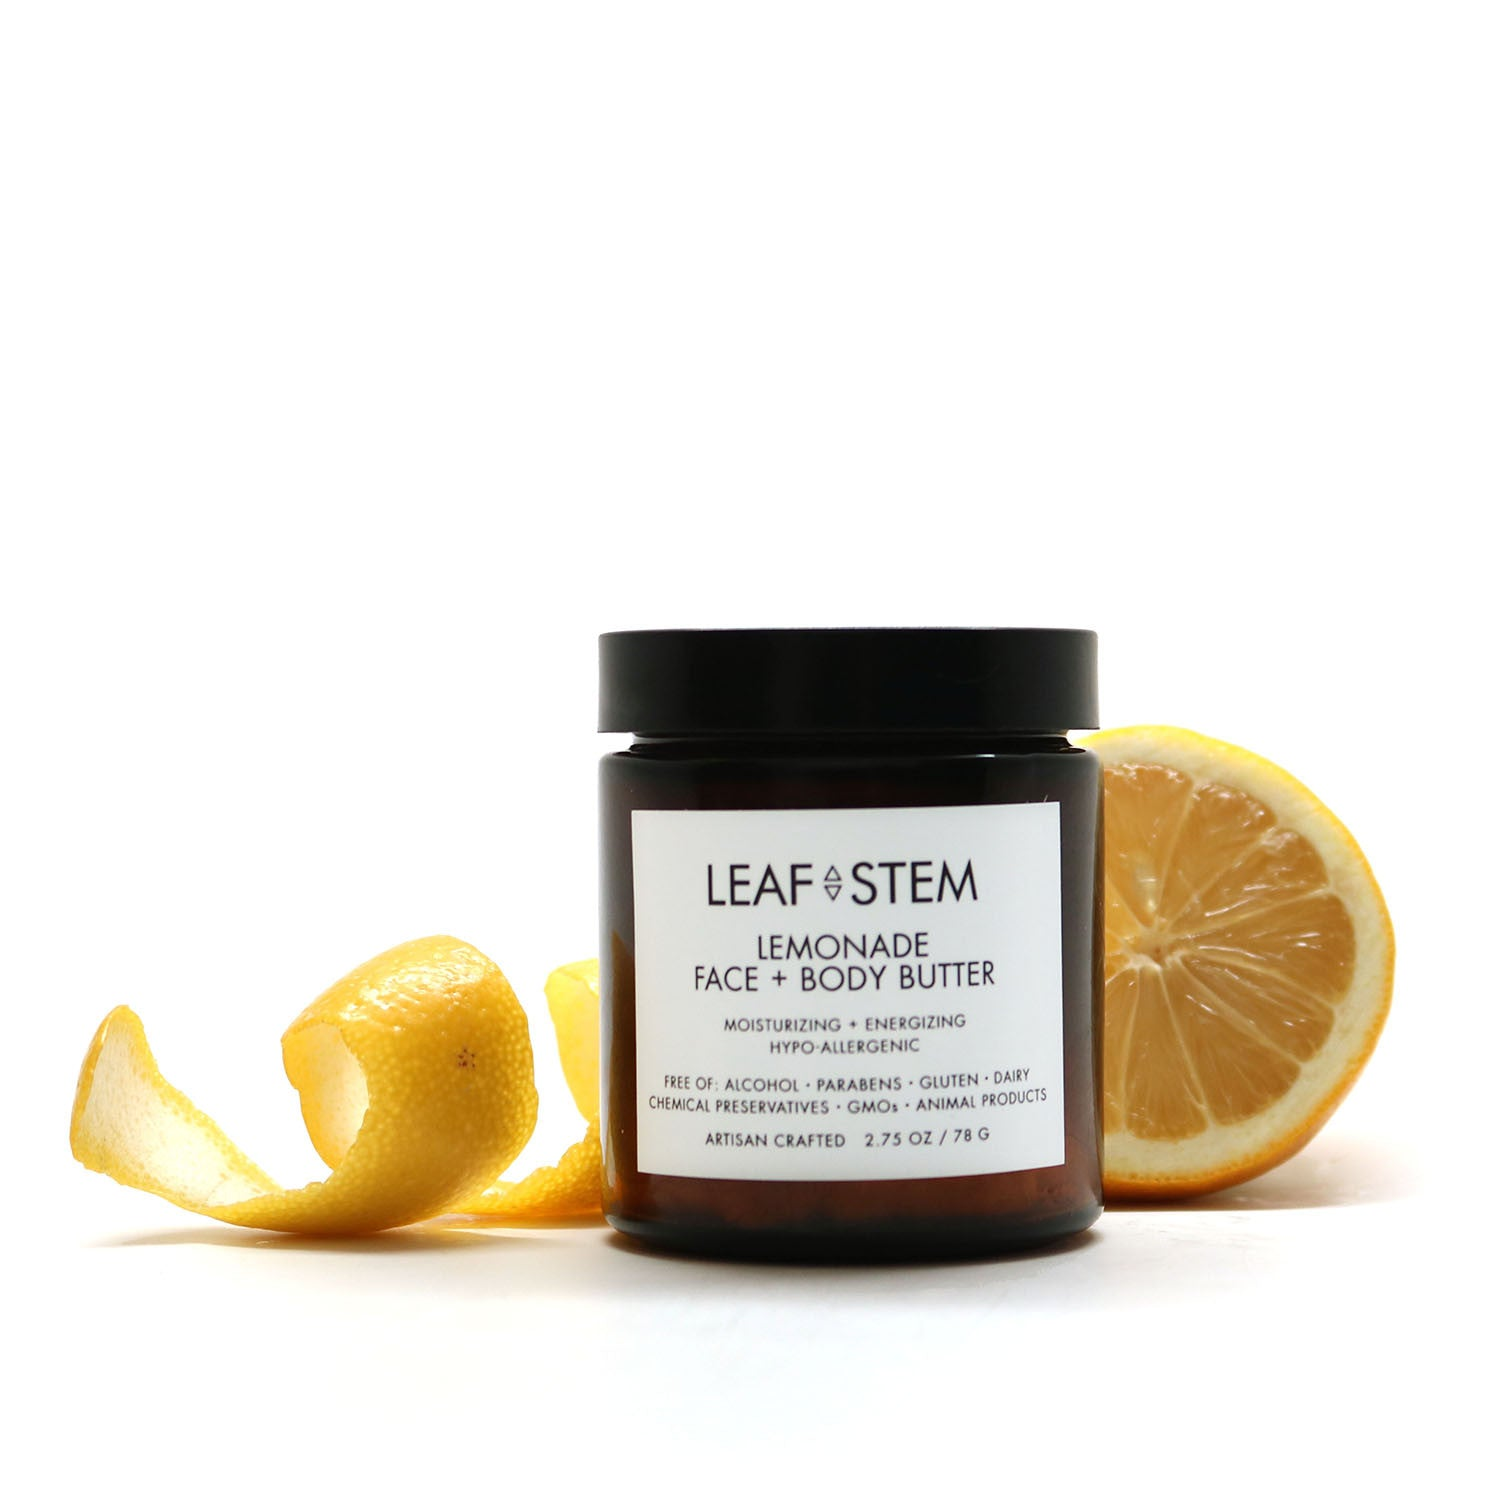 Lemonade Face + Body Butter - Leaf and Stem